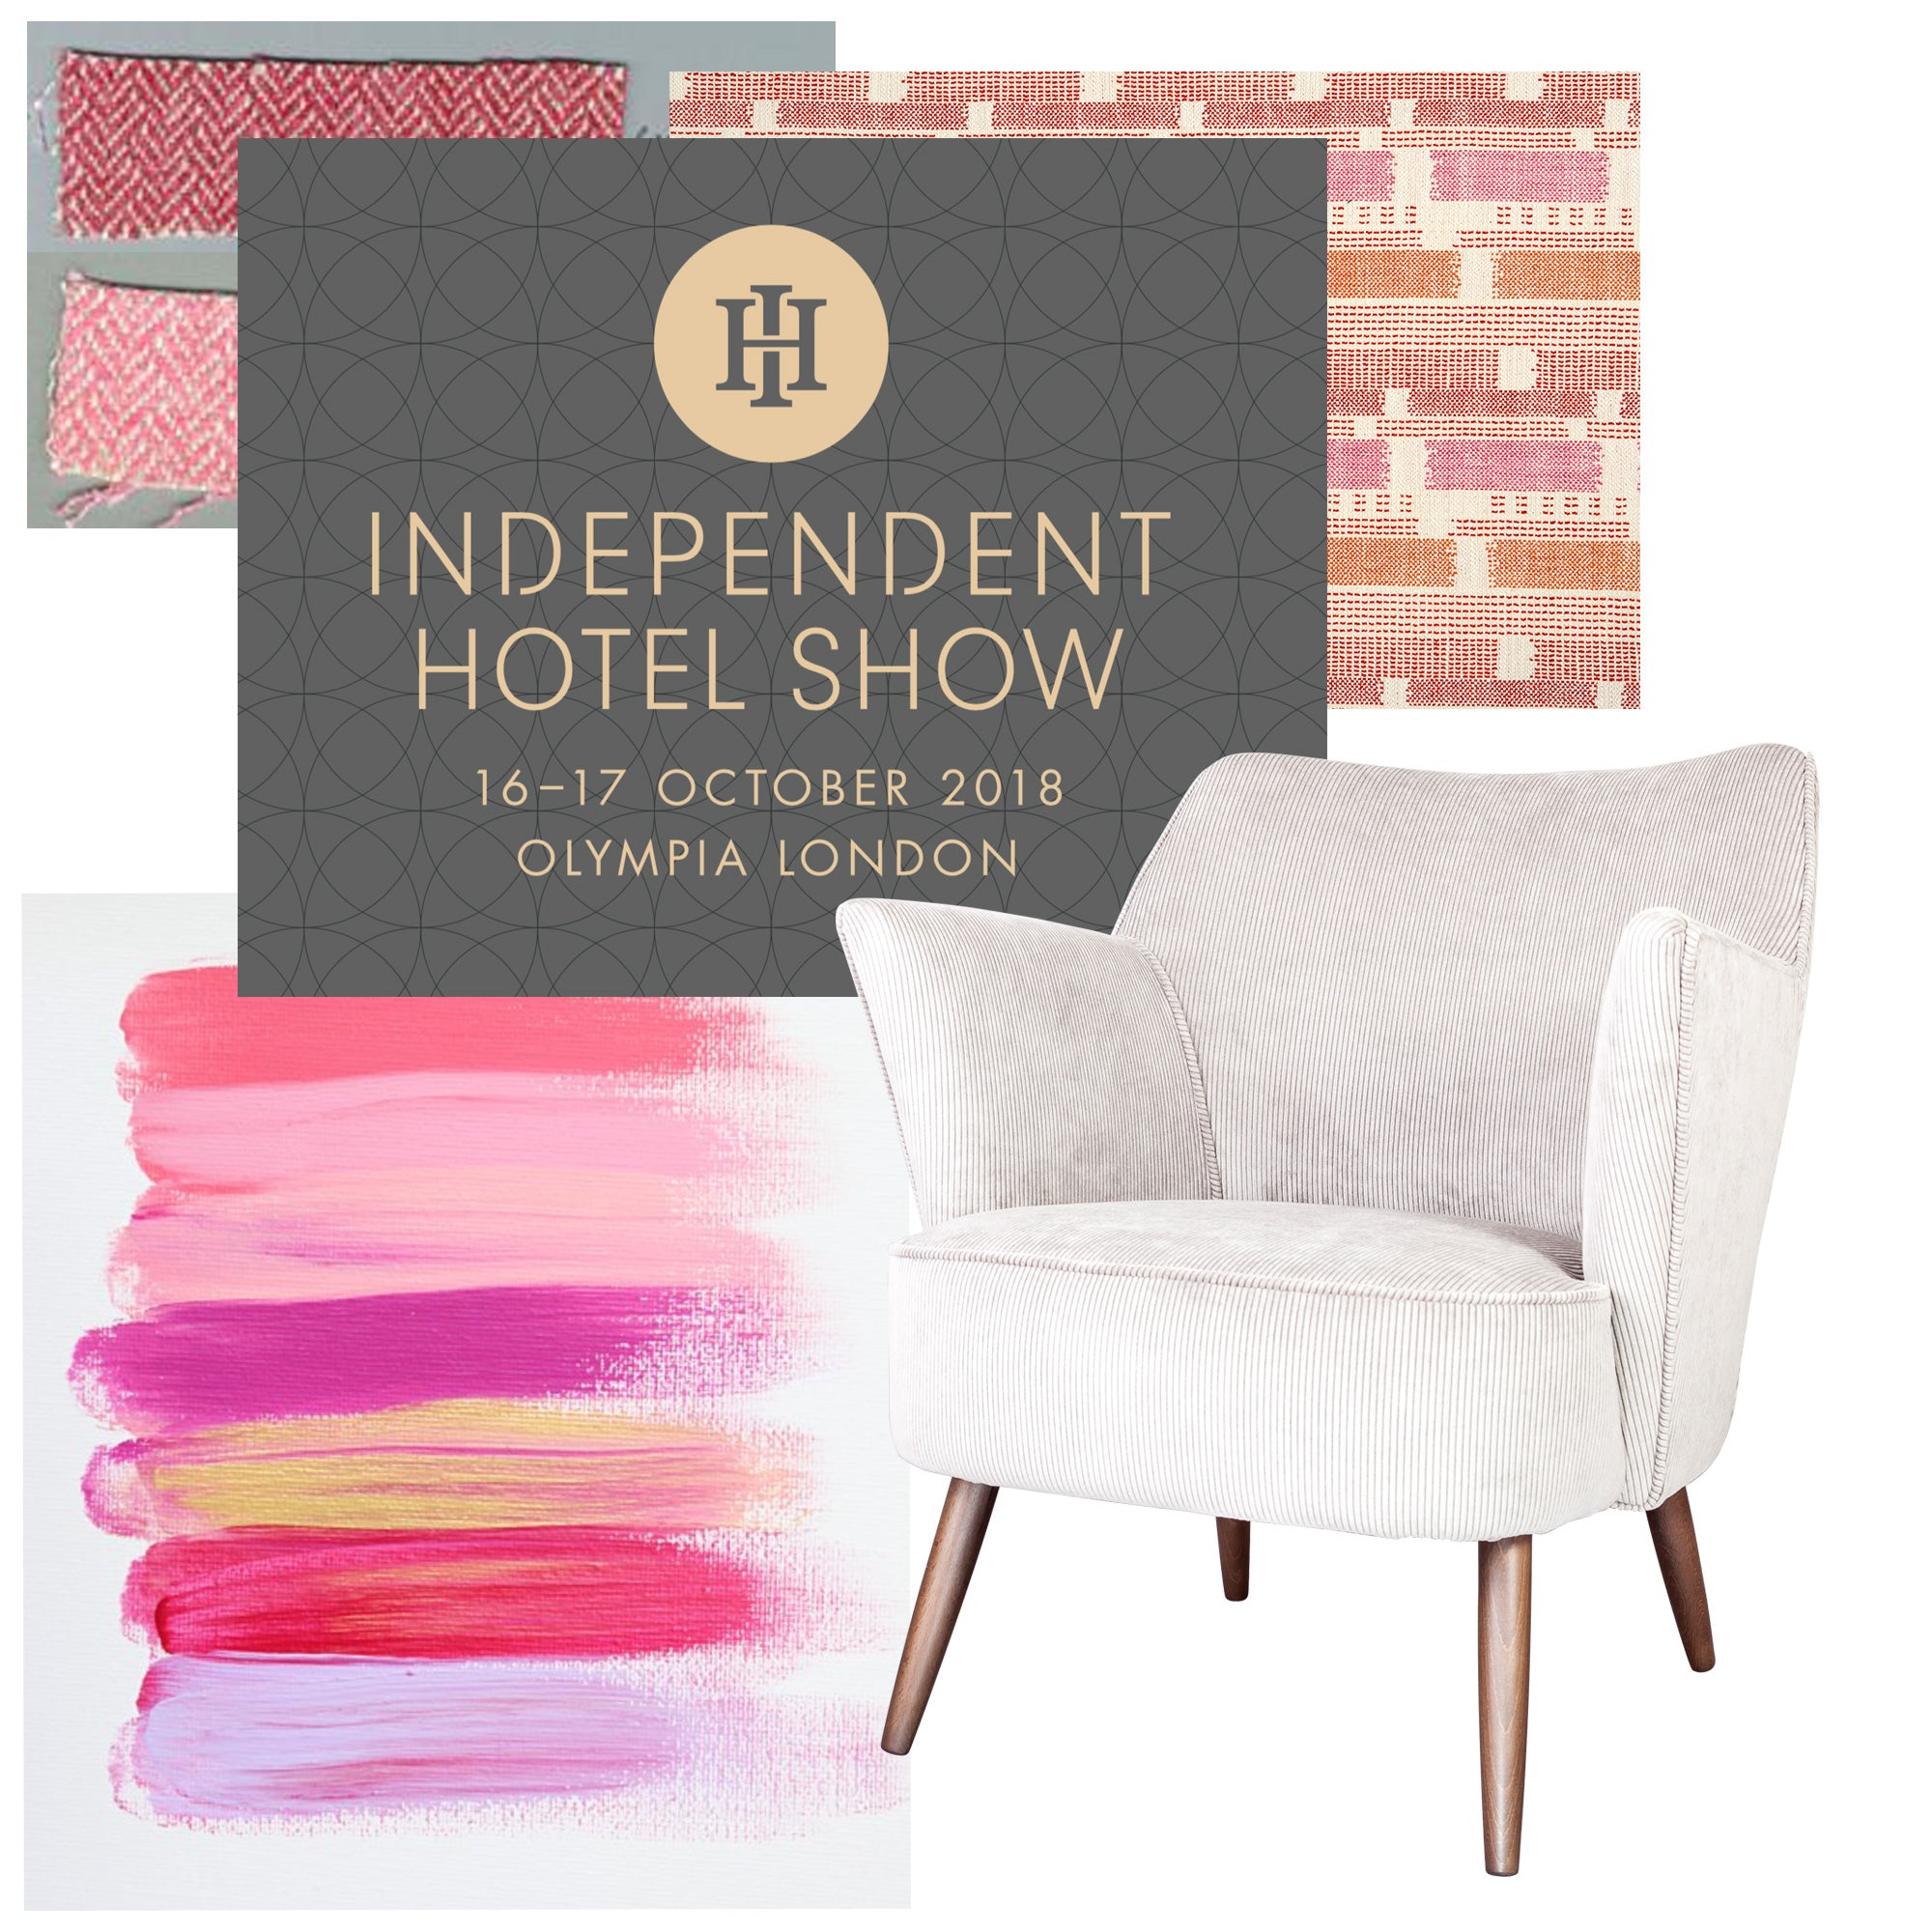 We're a Design Partner at the Independent Hotel Show 2018